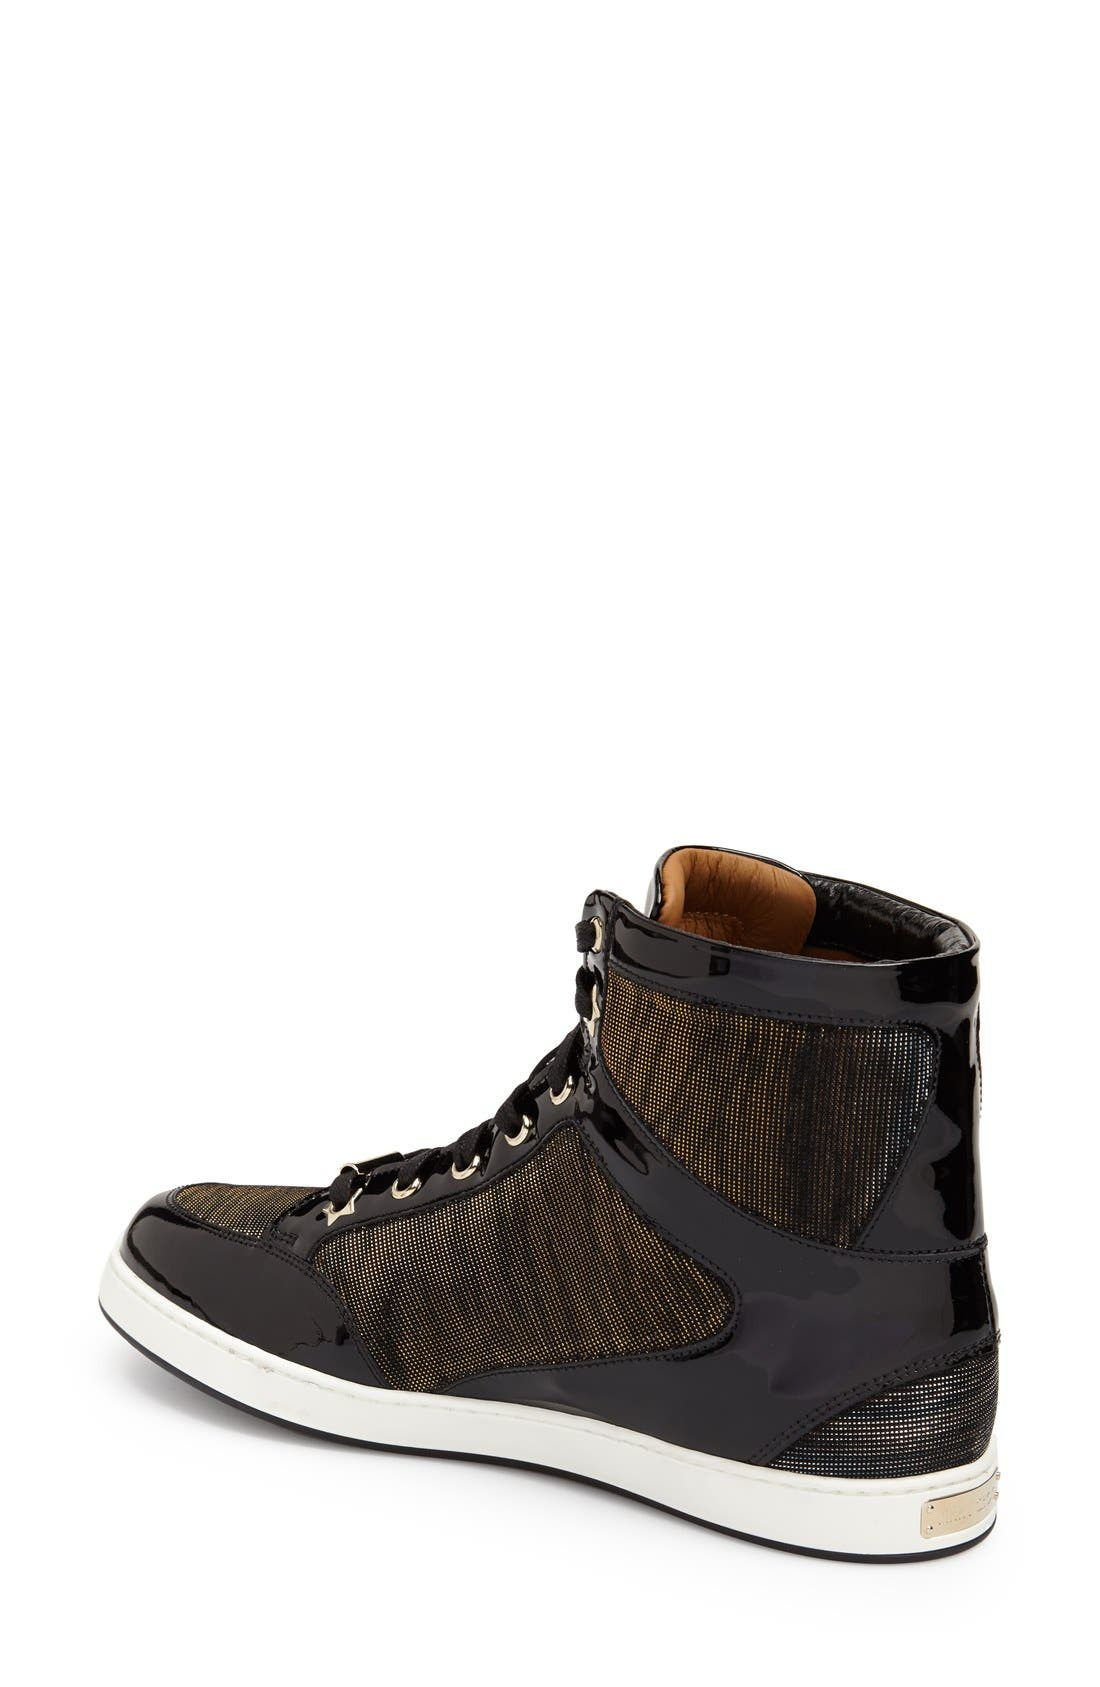 Alternate Image 2  - Jimmy Choo 'Tokyo' High Top Sneaker (Women)